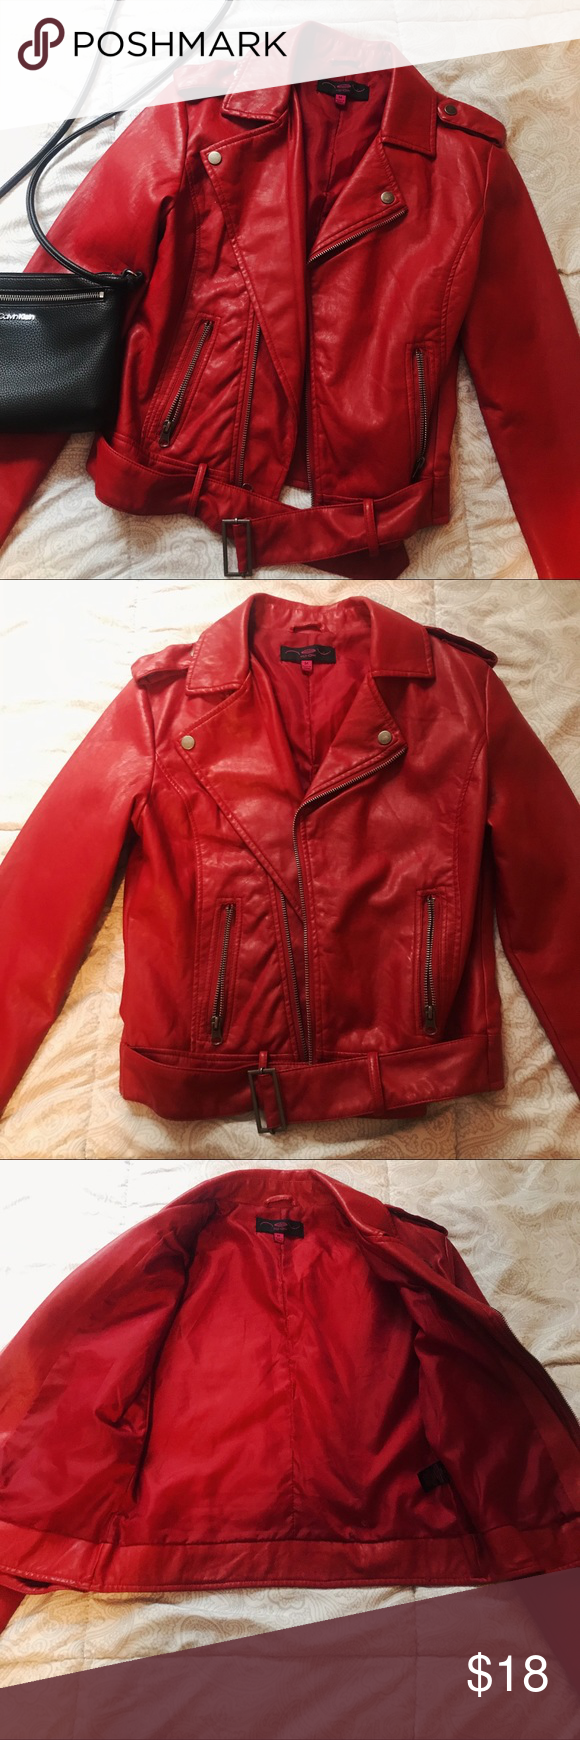 Red Faux Leather Jacket Leather Jacket New Look Jackets Faux Leather Jackets [ 1740 x 580 Pixel ]